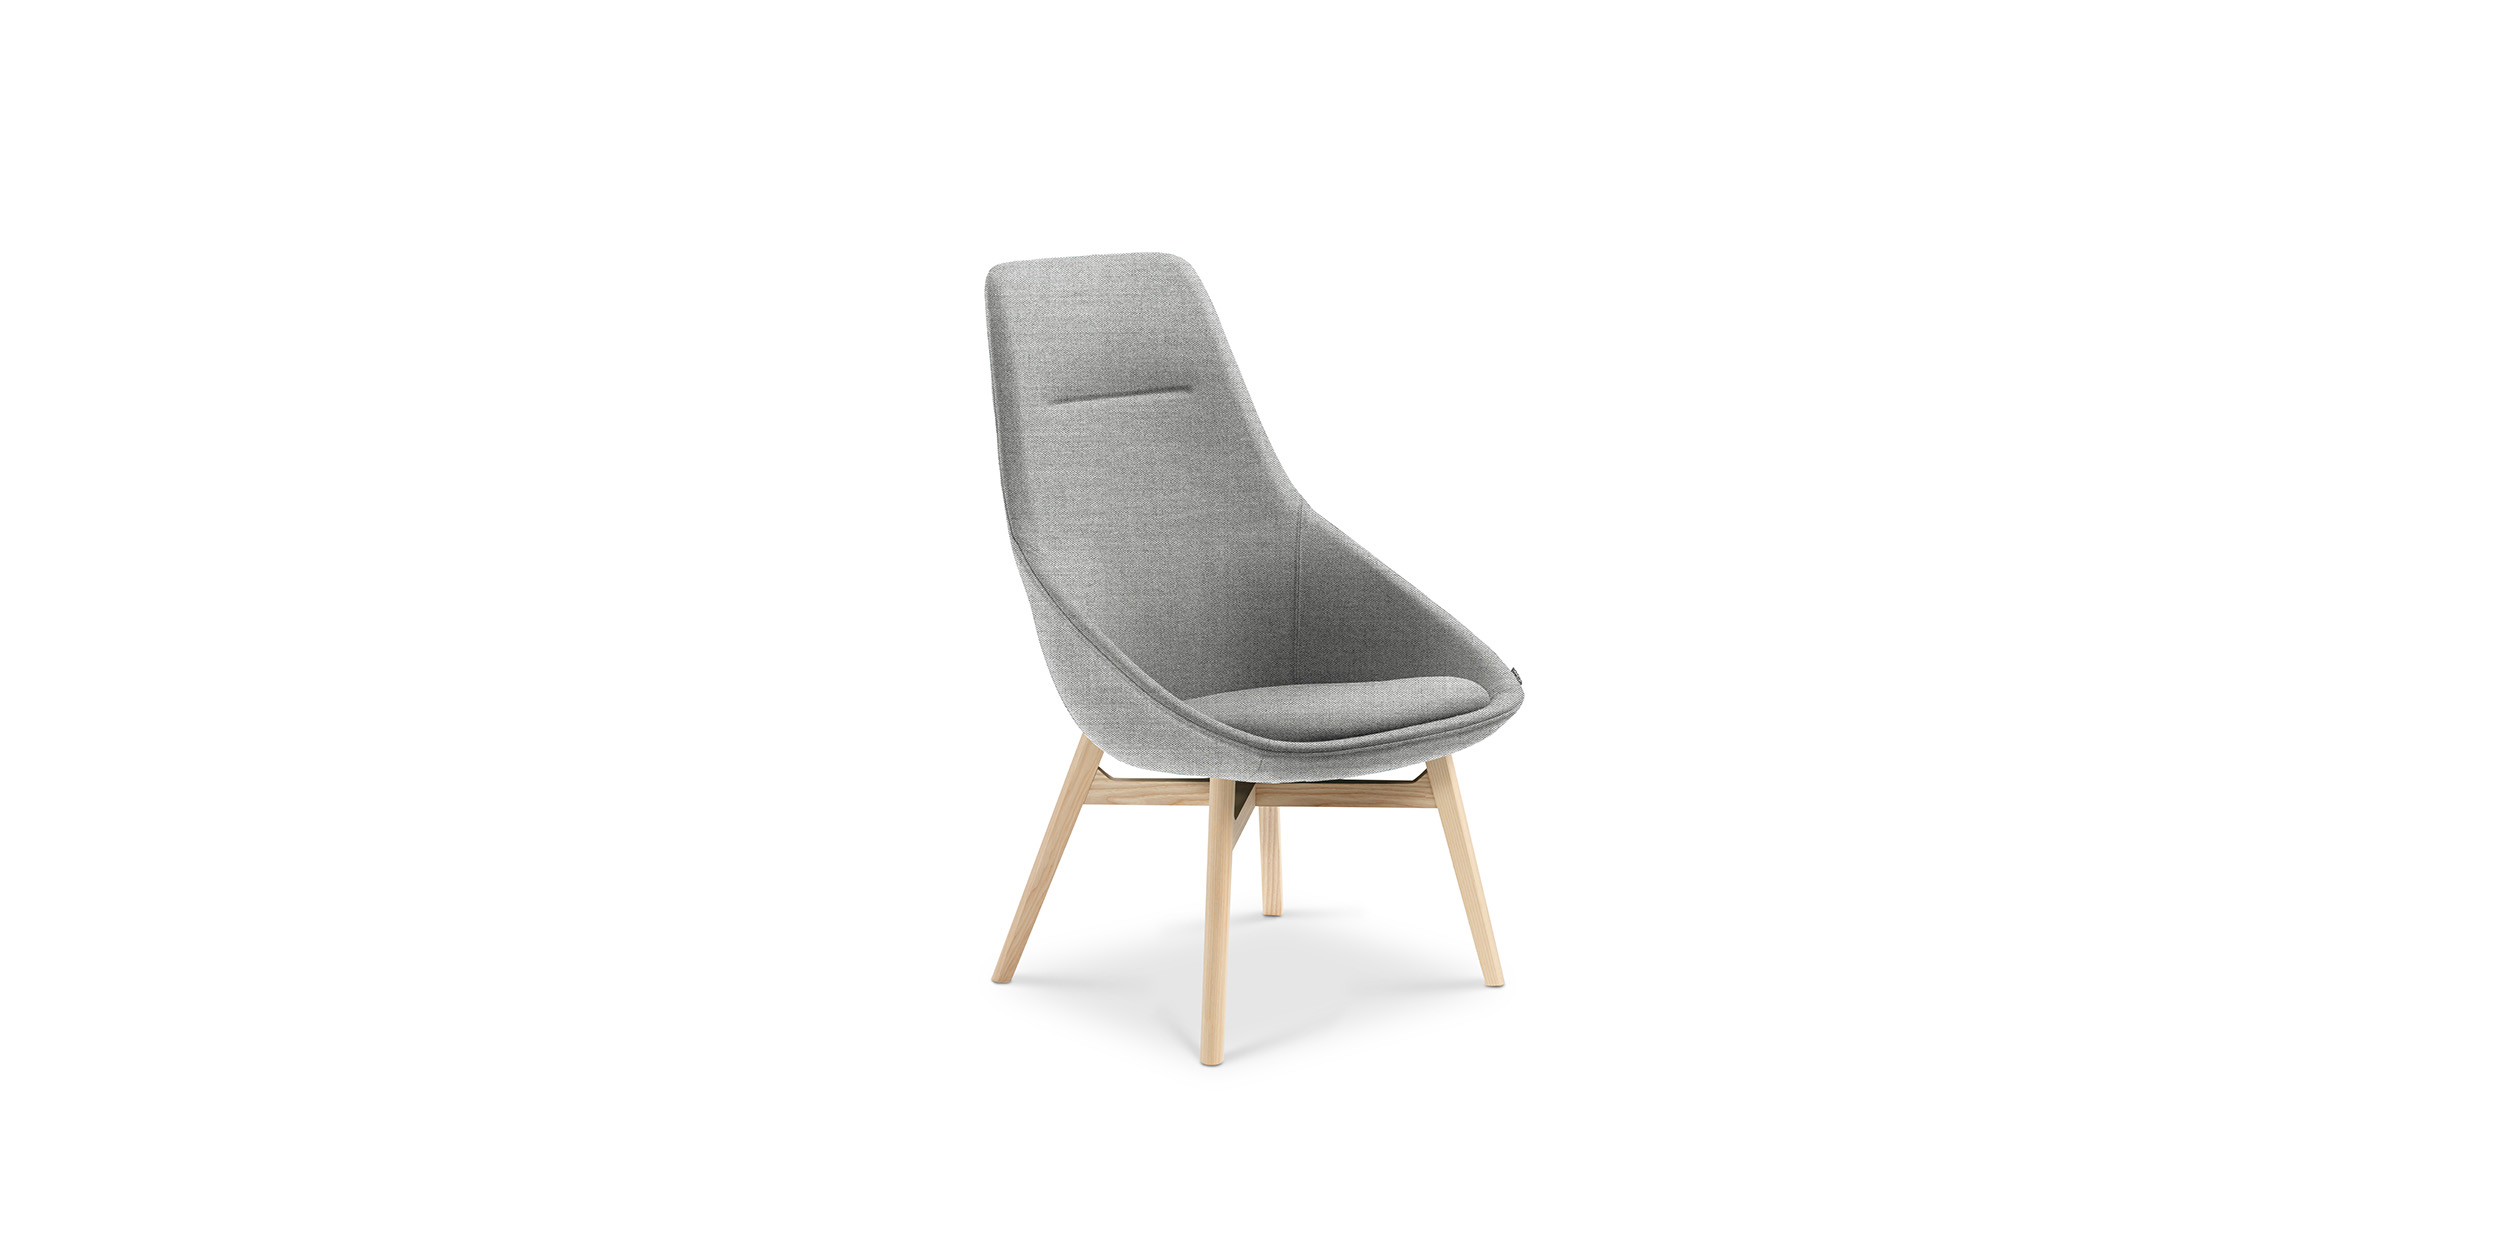 Ezy Wood High, Chair by Christophe Pillet